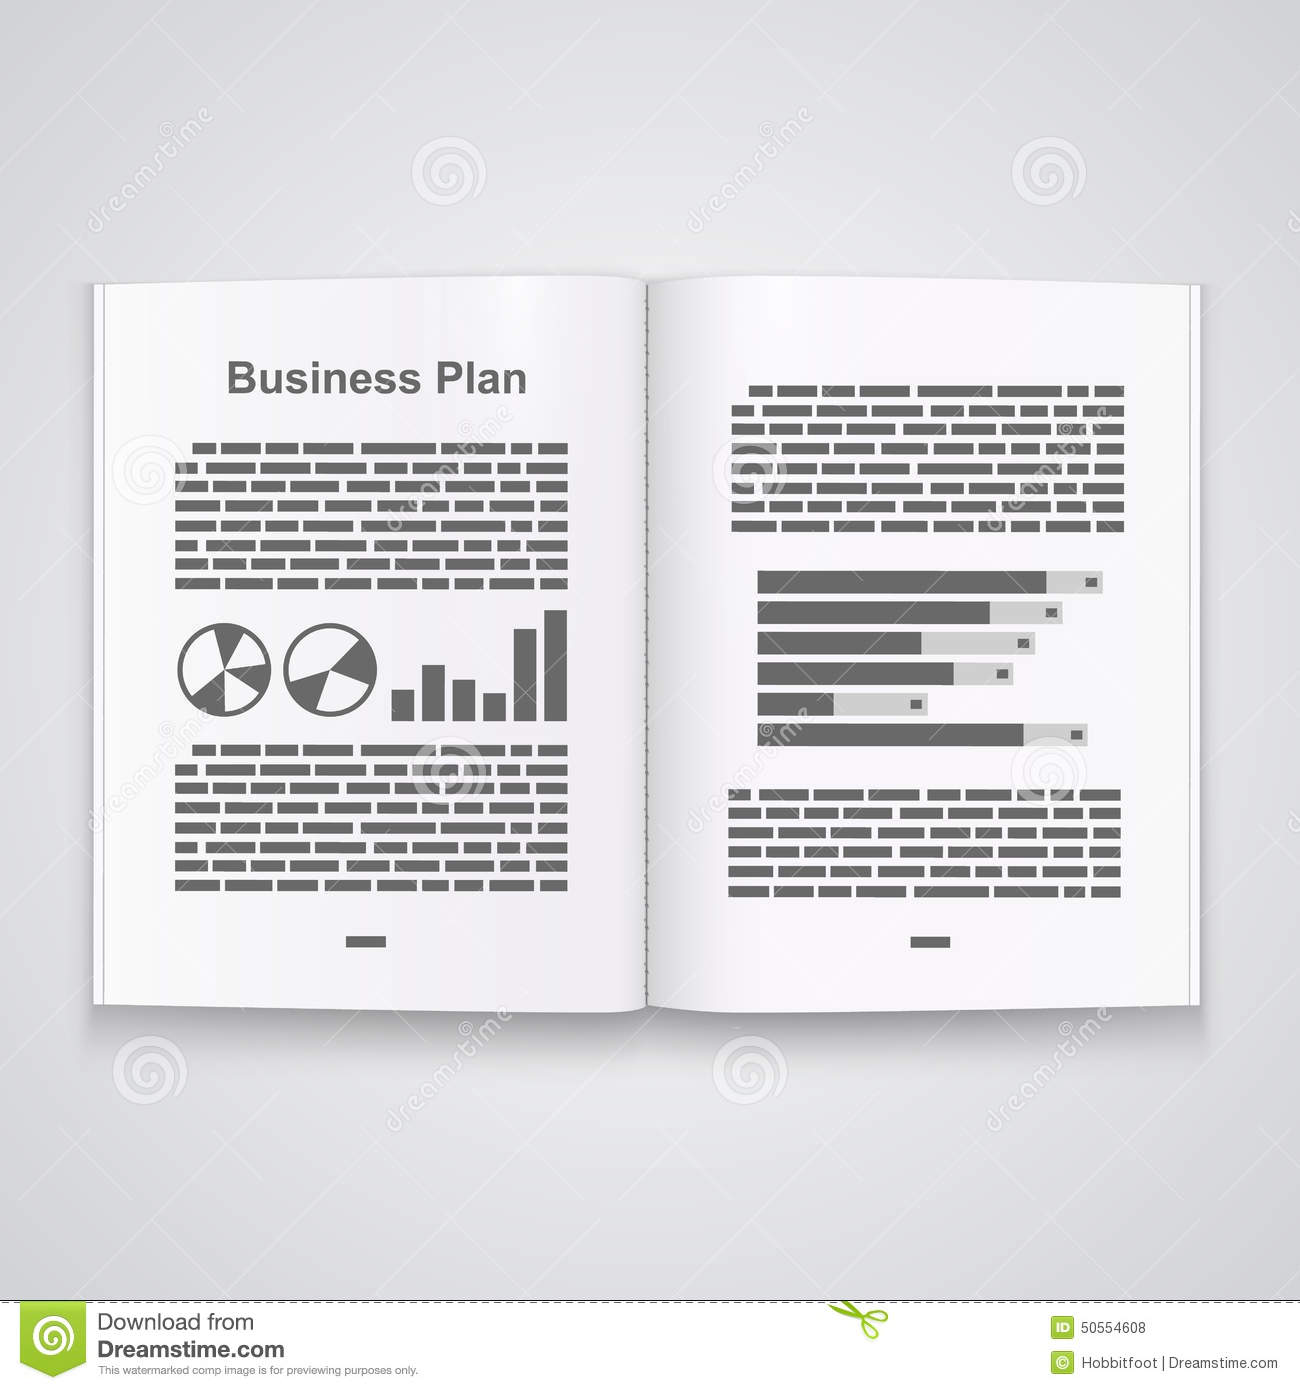 absa business plan booklet